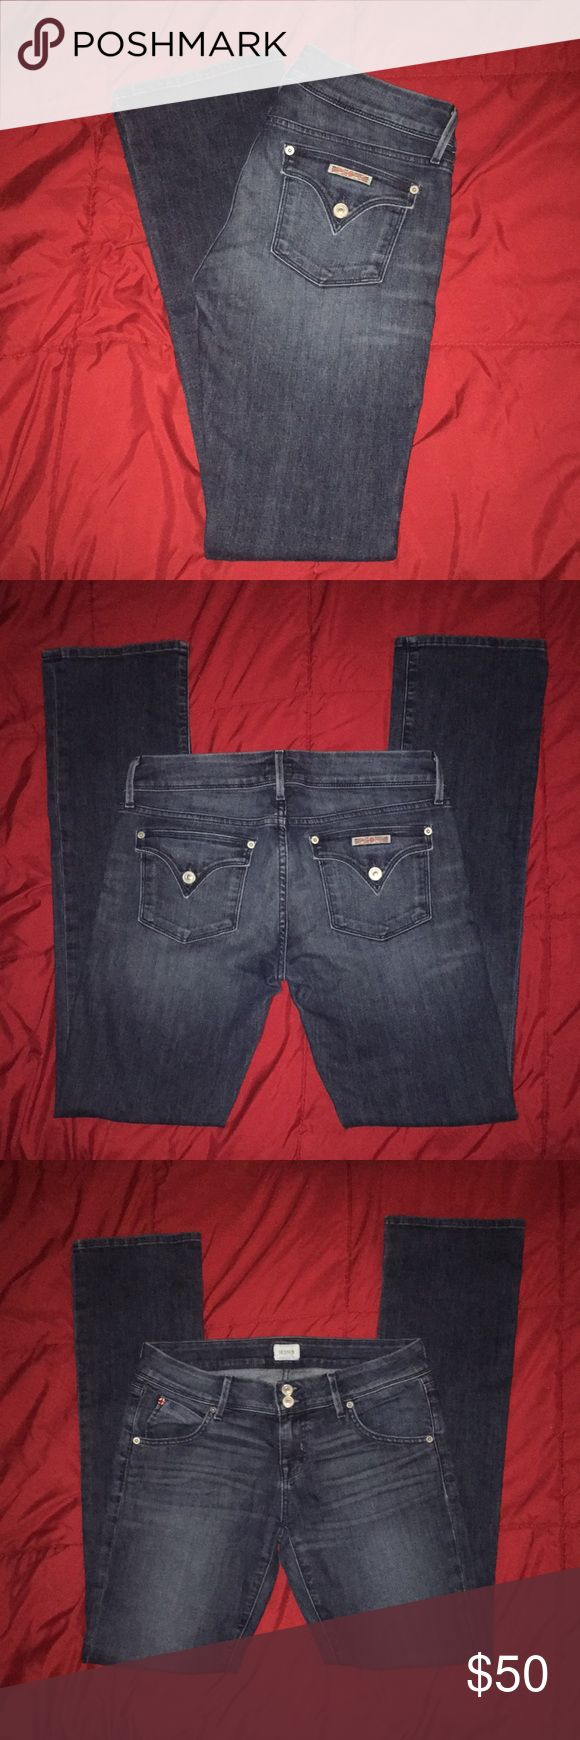 Hudson Signature Bootcut Jeans Super comfy Hudson Signature Bootcut Jeans.  Size 28.  Made of 88% cotton/10% polyester/2% spandex.  Please see pic of The tiny nitch in crotch (hardly a hole). Jean price has been adjusted because of this. These jeans have not been worn and that small flaw came with purchase. Hudson Jeans Jeans Boot Cut